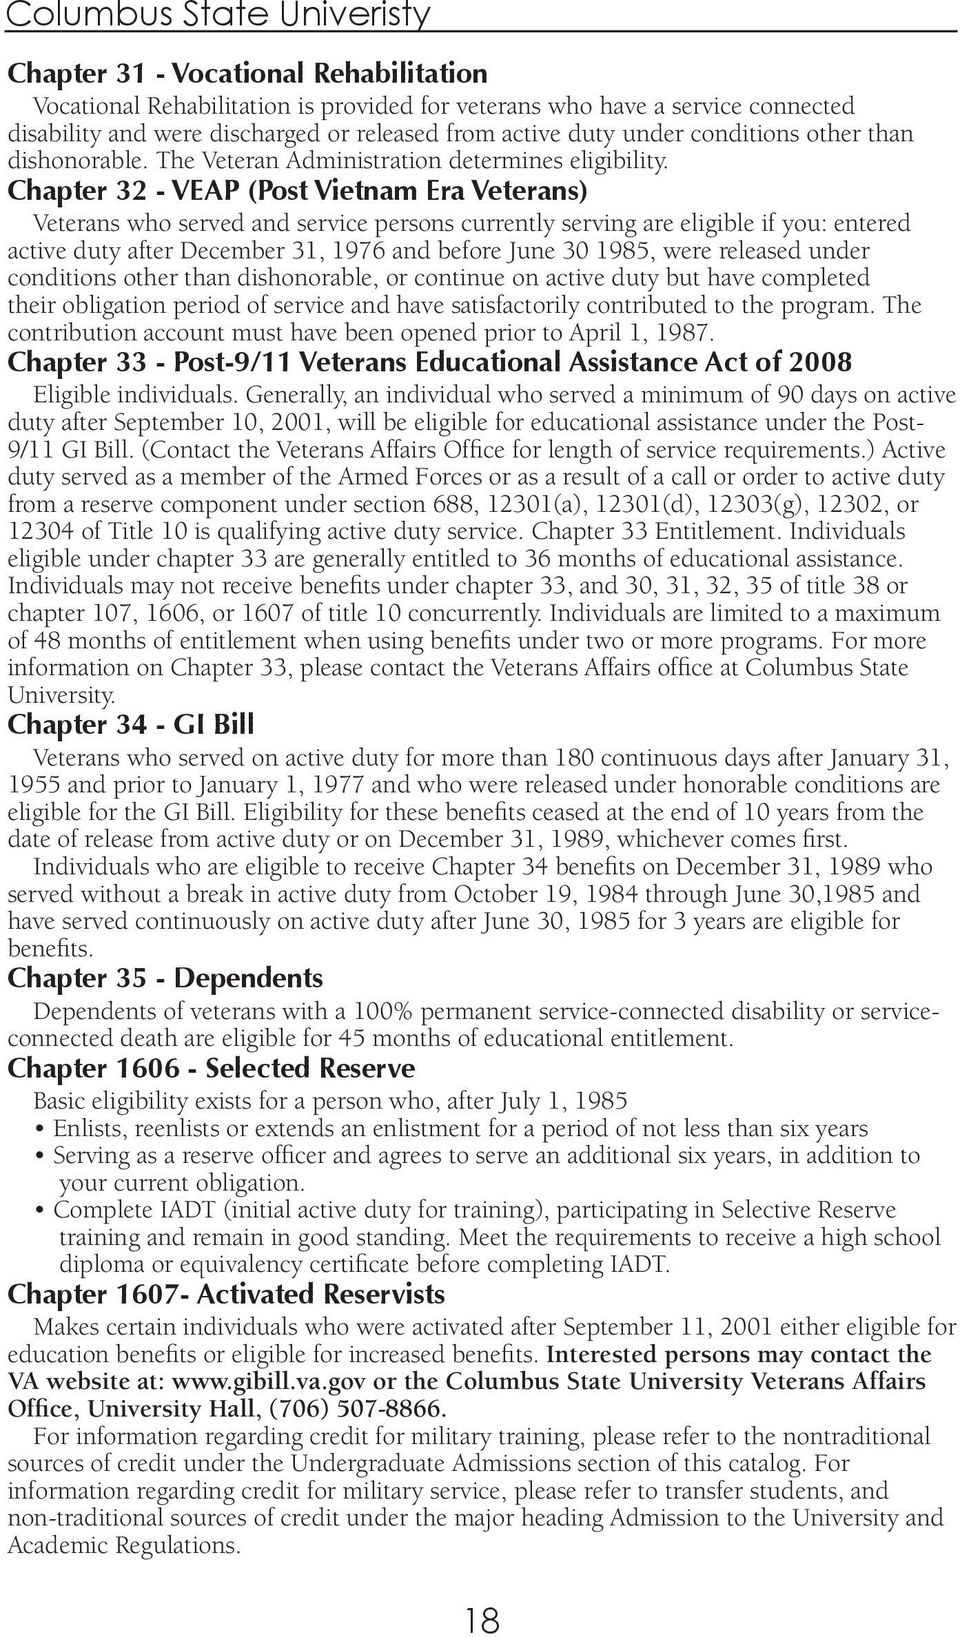 Chapter 32 - VEAP (Post Vietnam Era Veterans) Veterans who served and service persons currently serving are eligible if you: entered active duty after December 31, 1976 and before June 30 1985, were